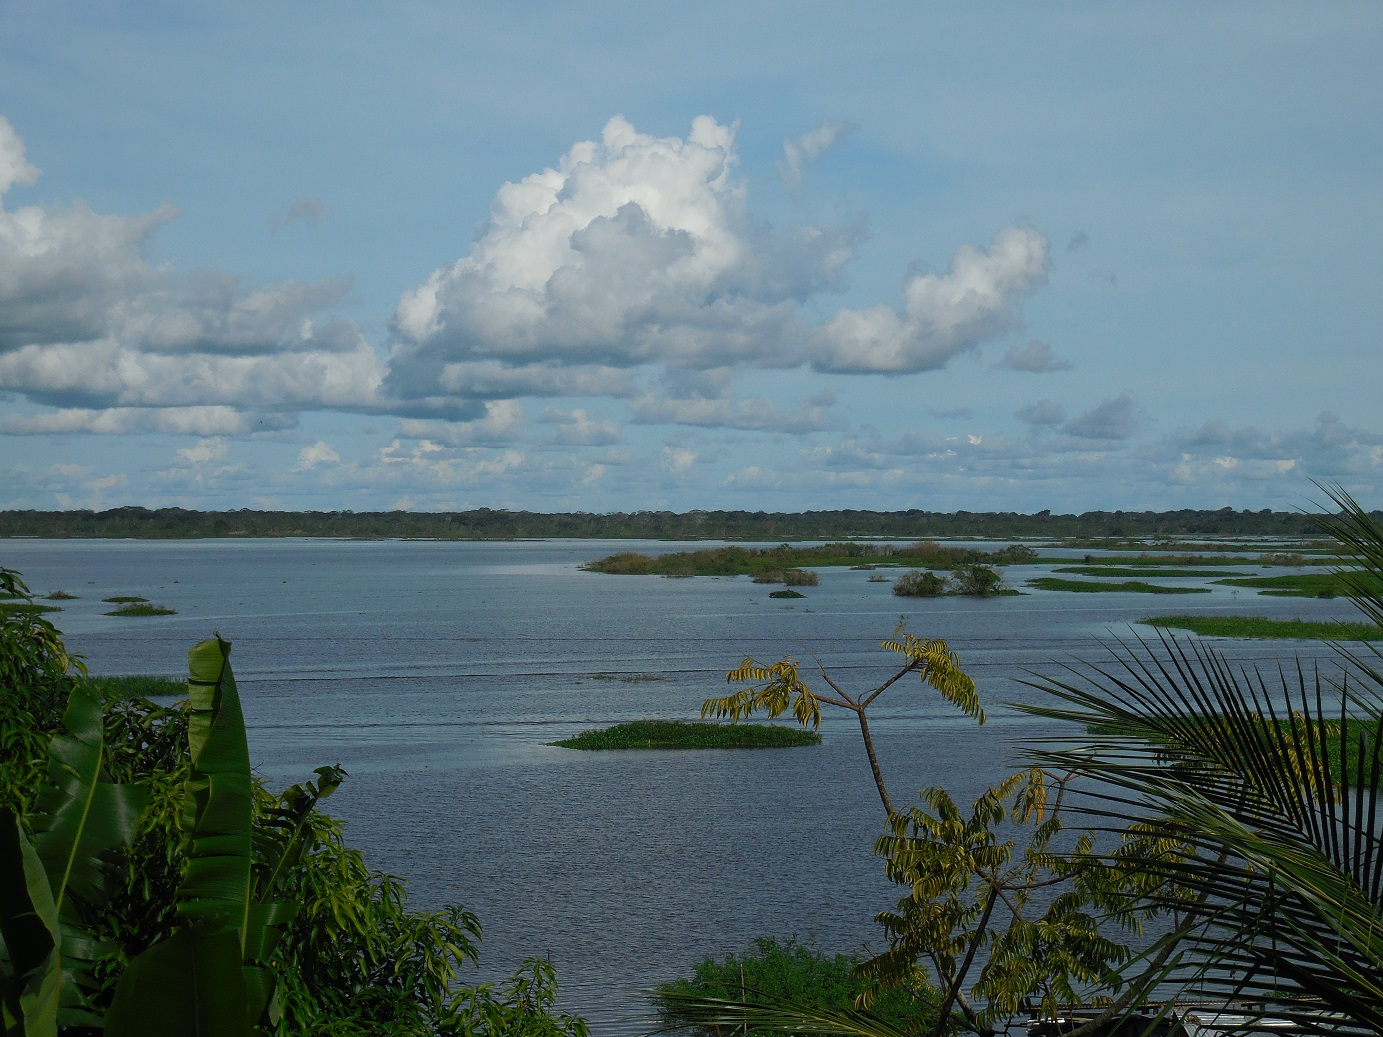 River by Iquitos